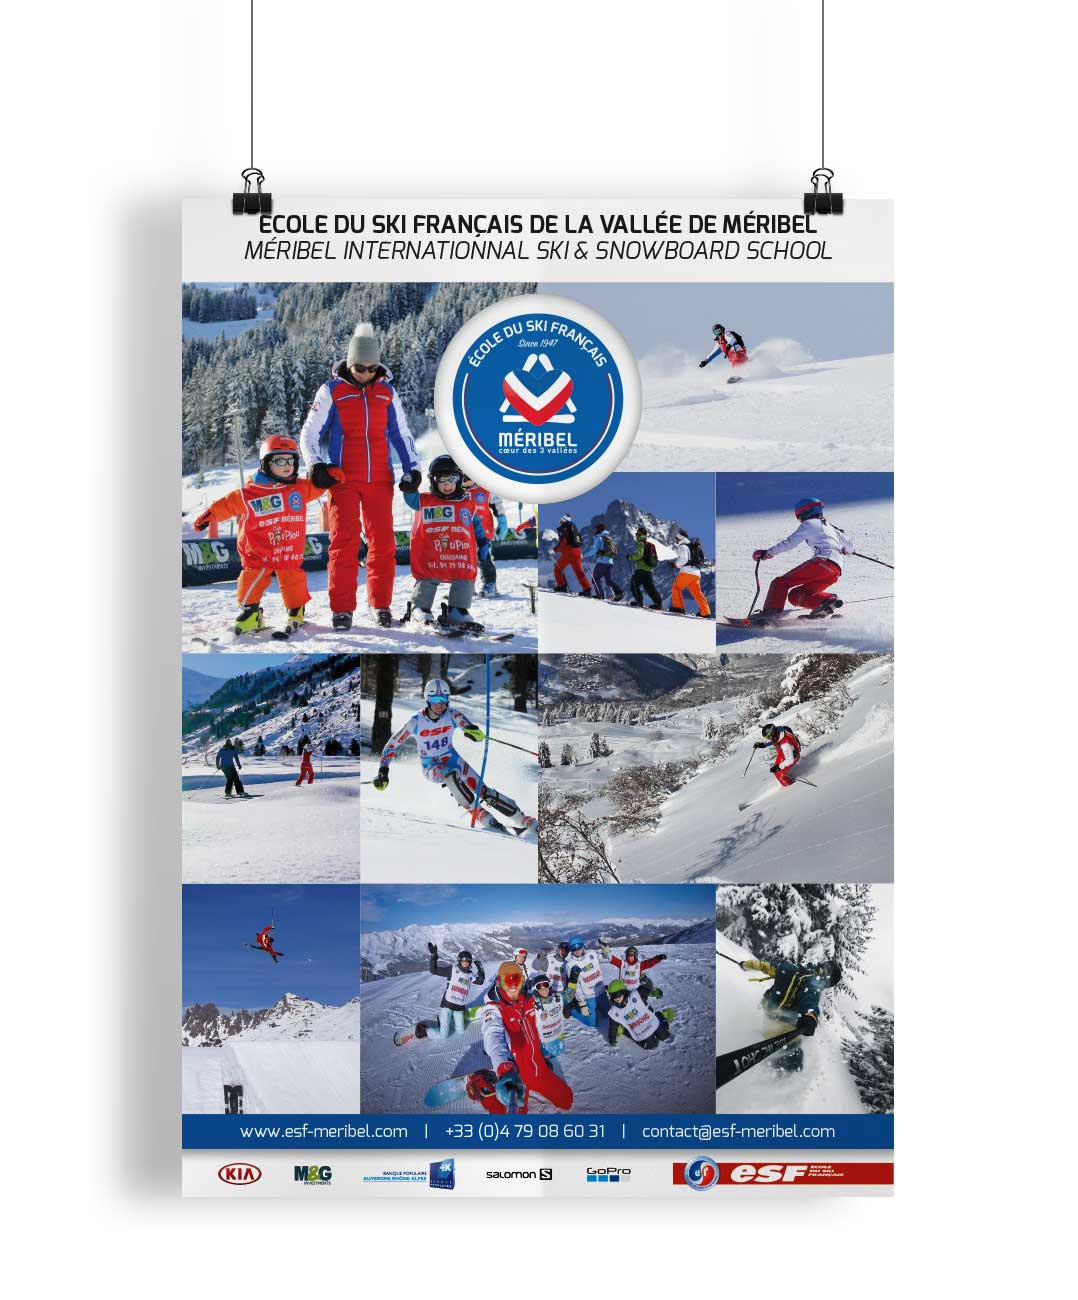 portfolio-esf-meribel-affiche-2-florence-borrel-flobo-design-graphique-infographie-webdesign-savoie-tarentaise-meribel-menuires-courchevel